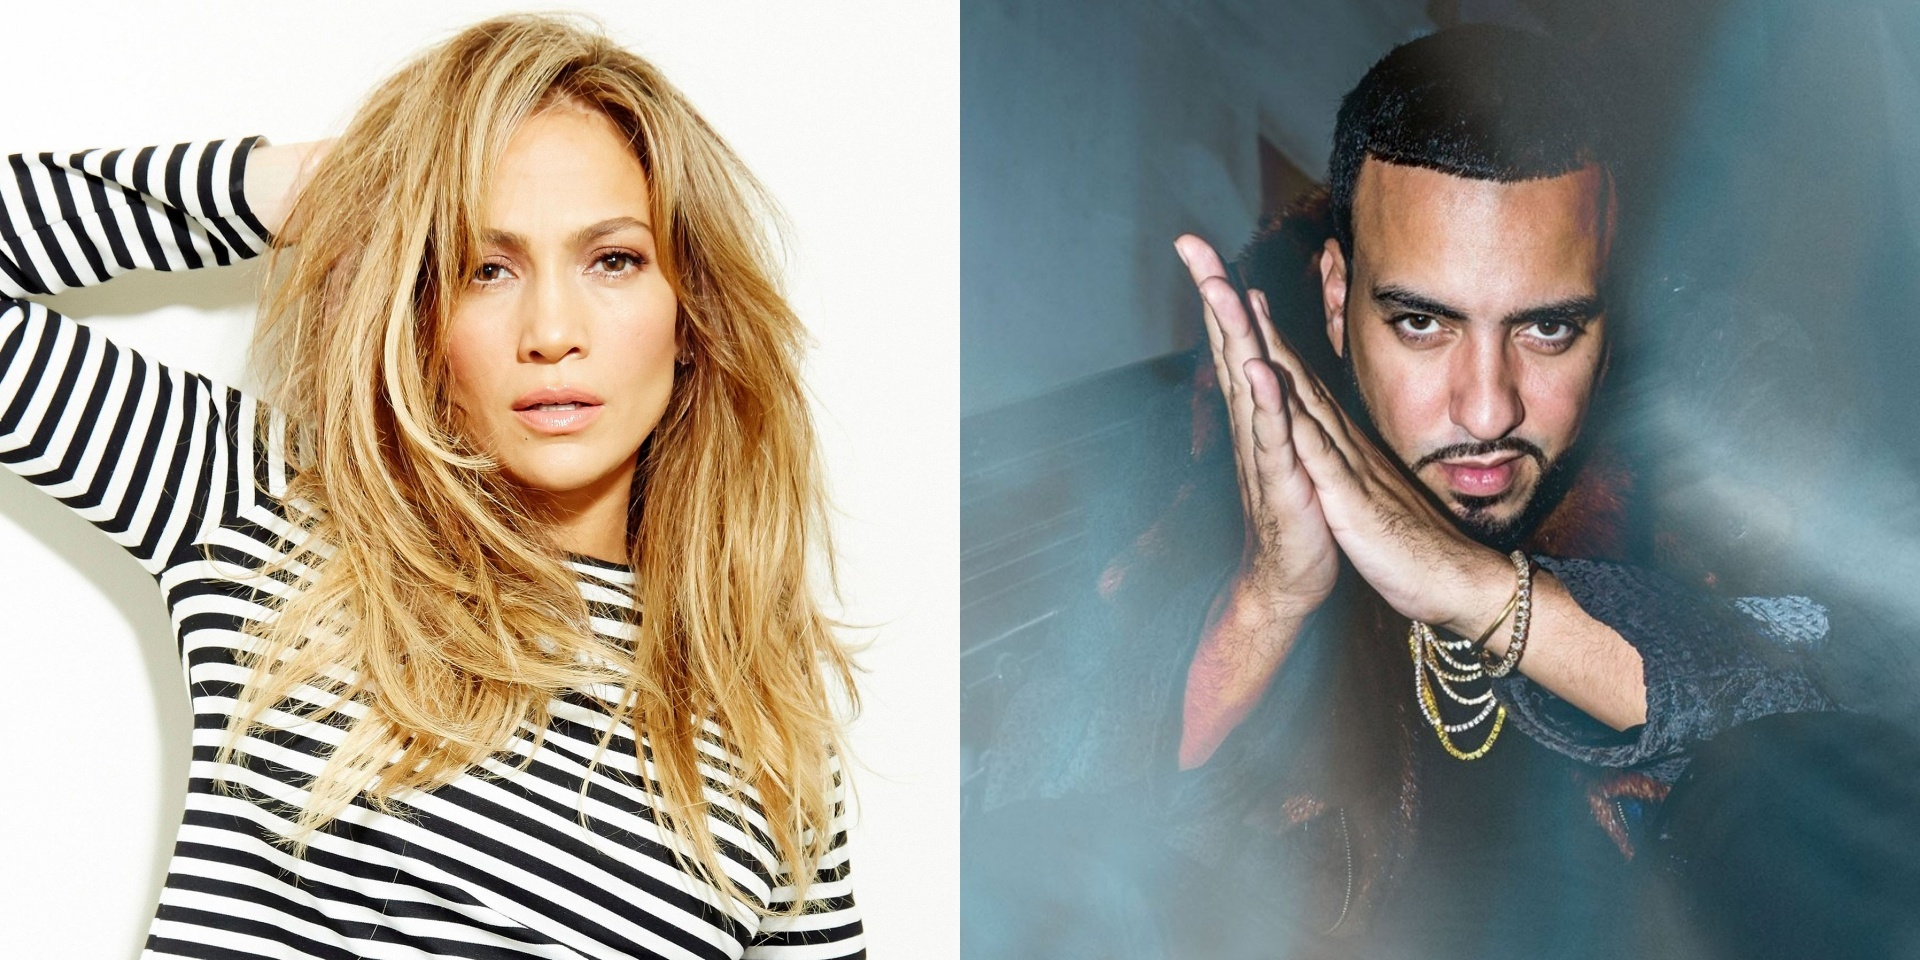 Jennifer Lopez releases new single with French Montana 'Medicine' – listen